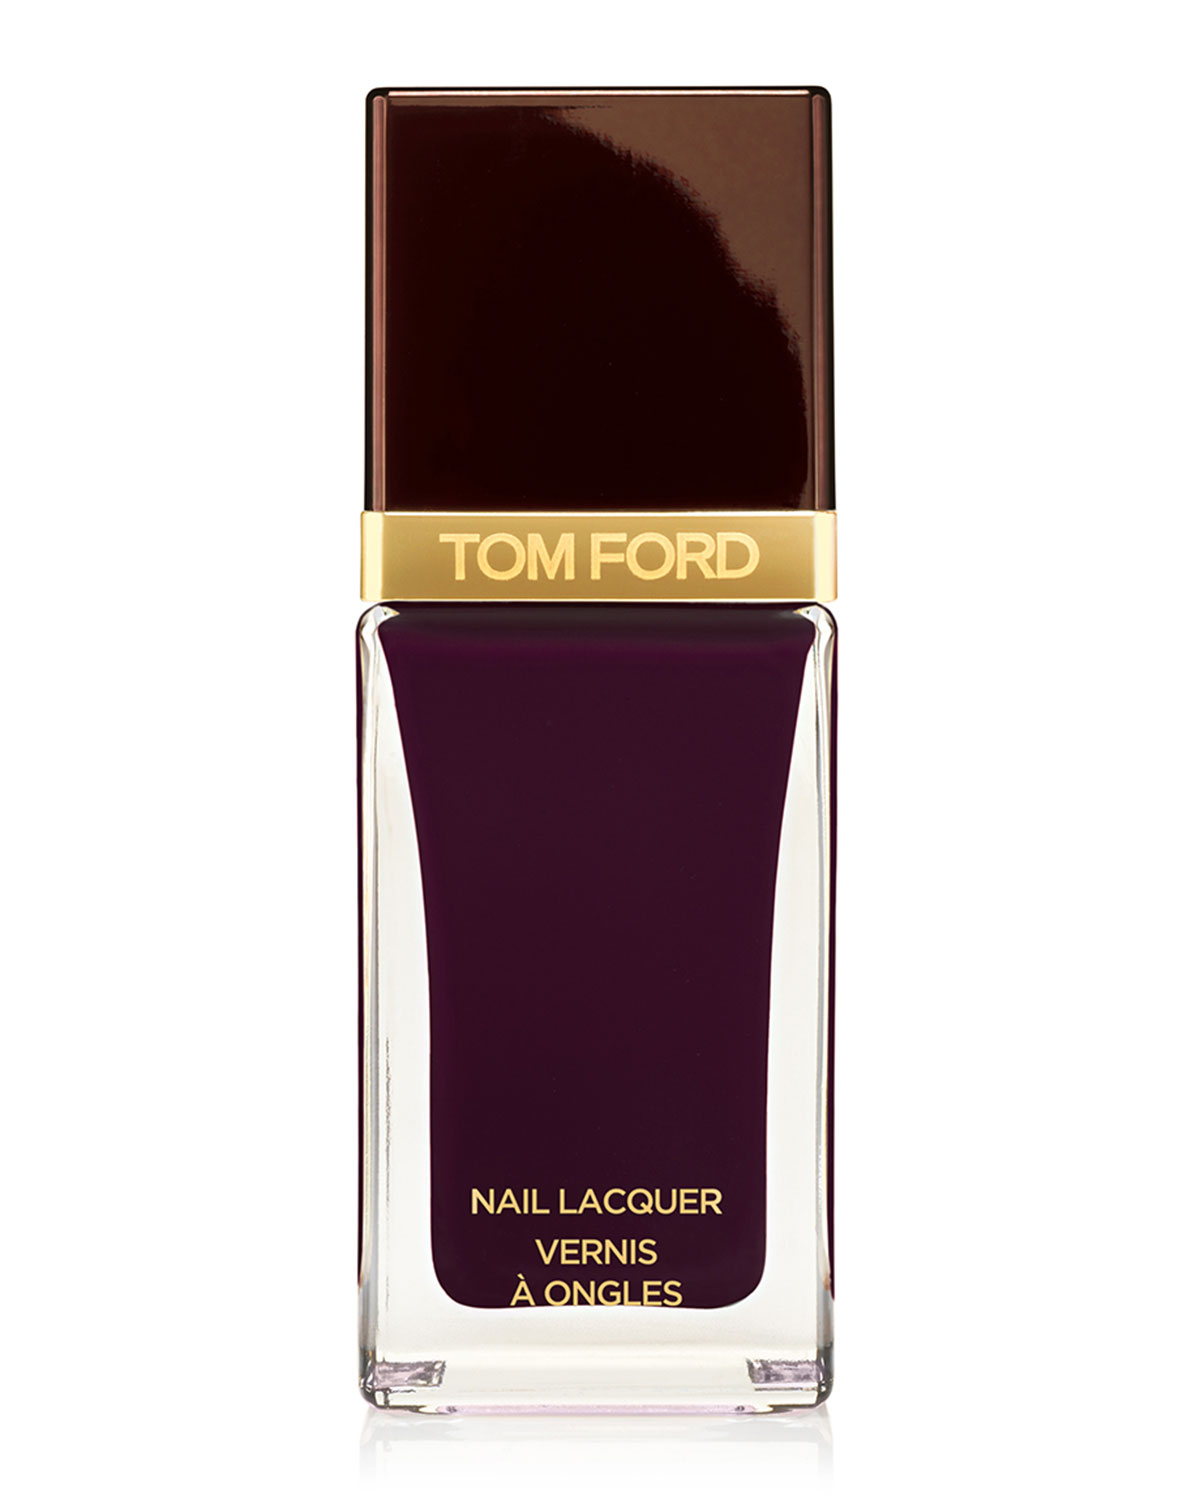 TOM FORD Nail Lacquer, 0.4 oz./ 12 mL   Neiman Marcus